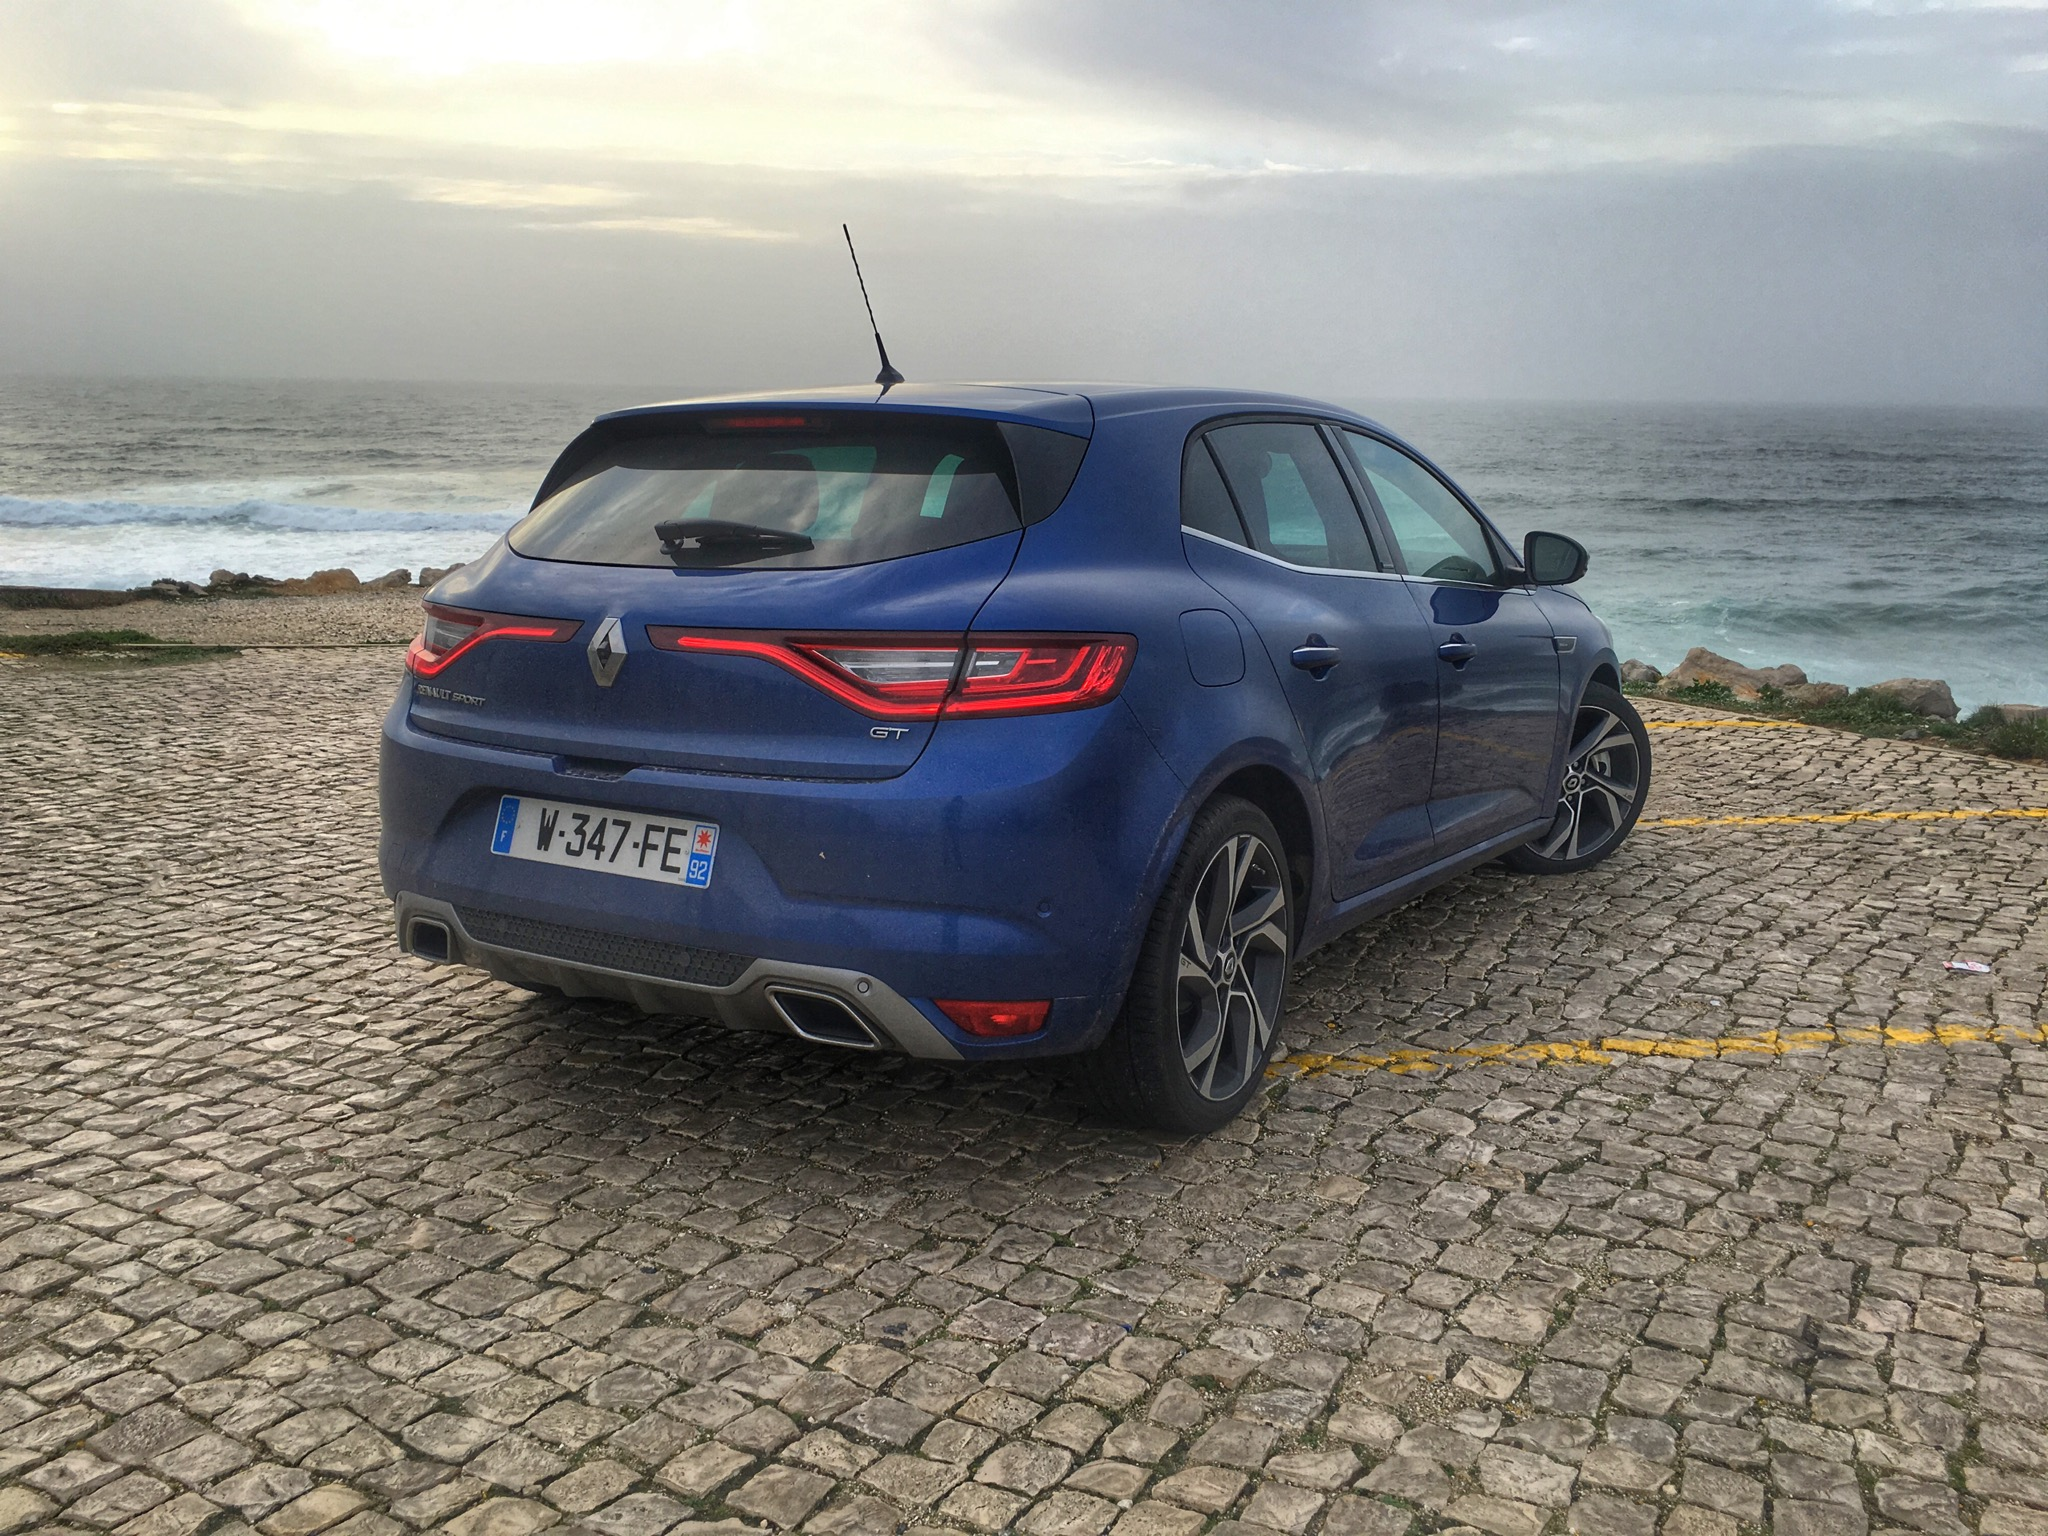 2016 Renault Megane Gt Rear Side View (View 26 of 27)